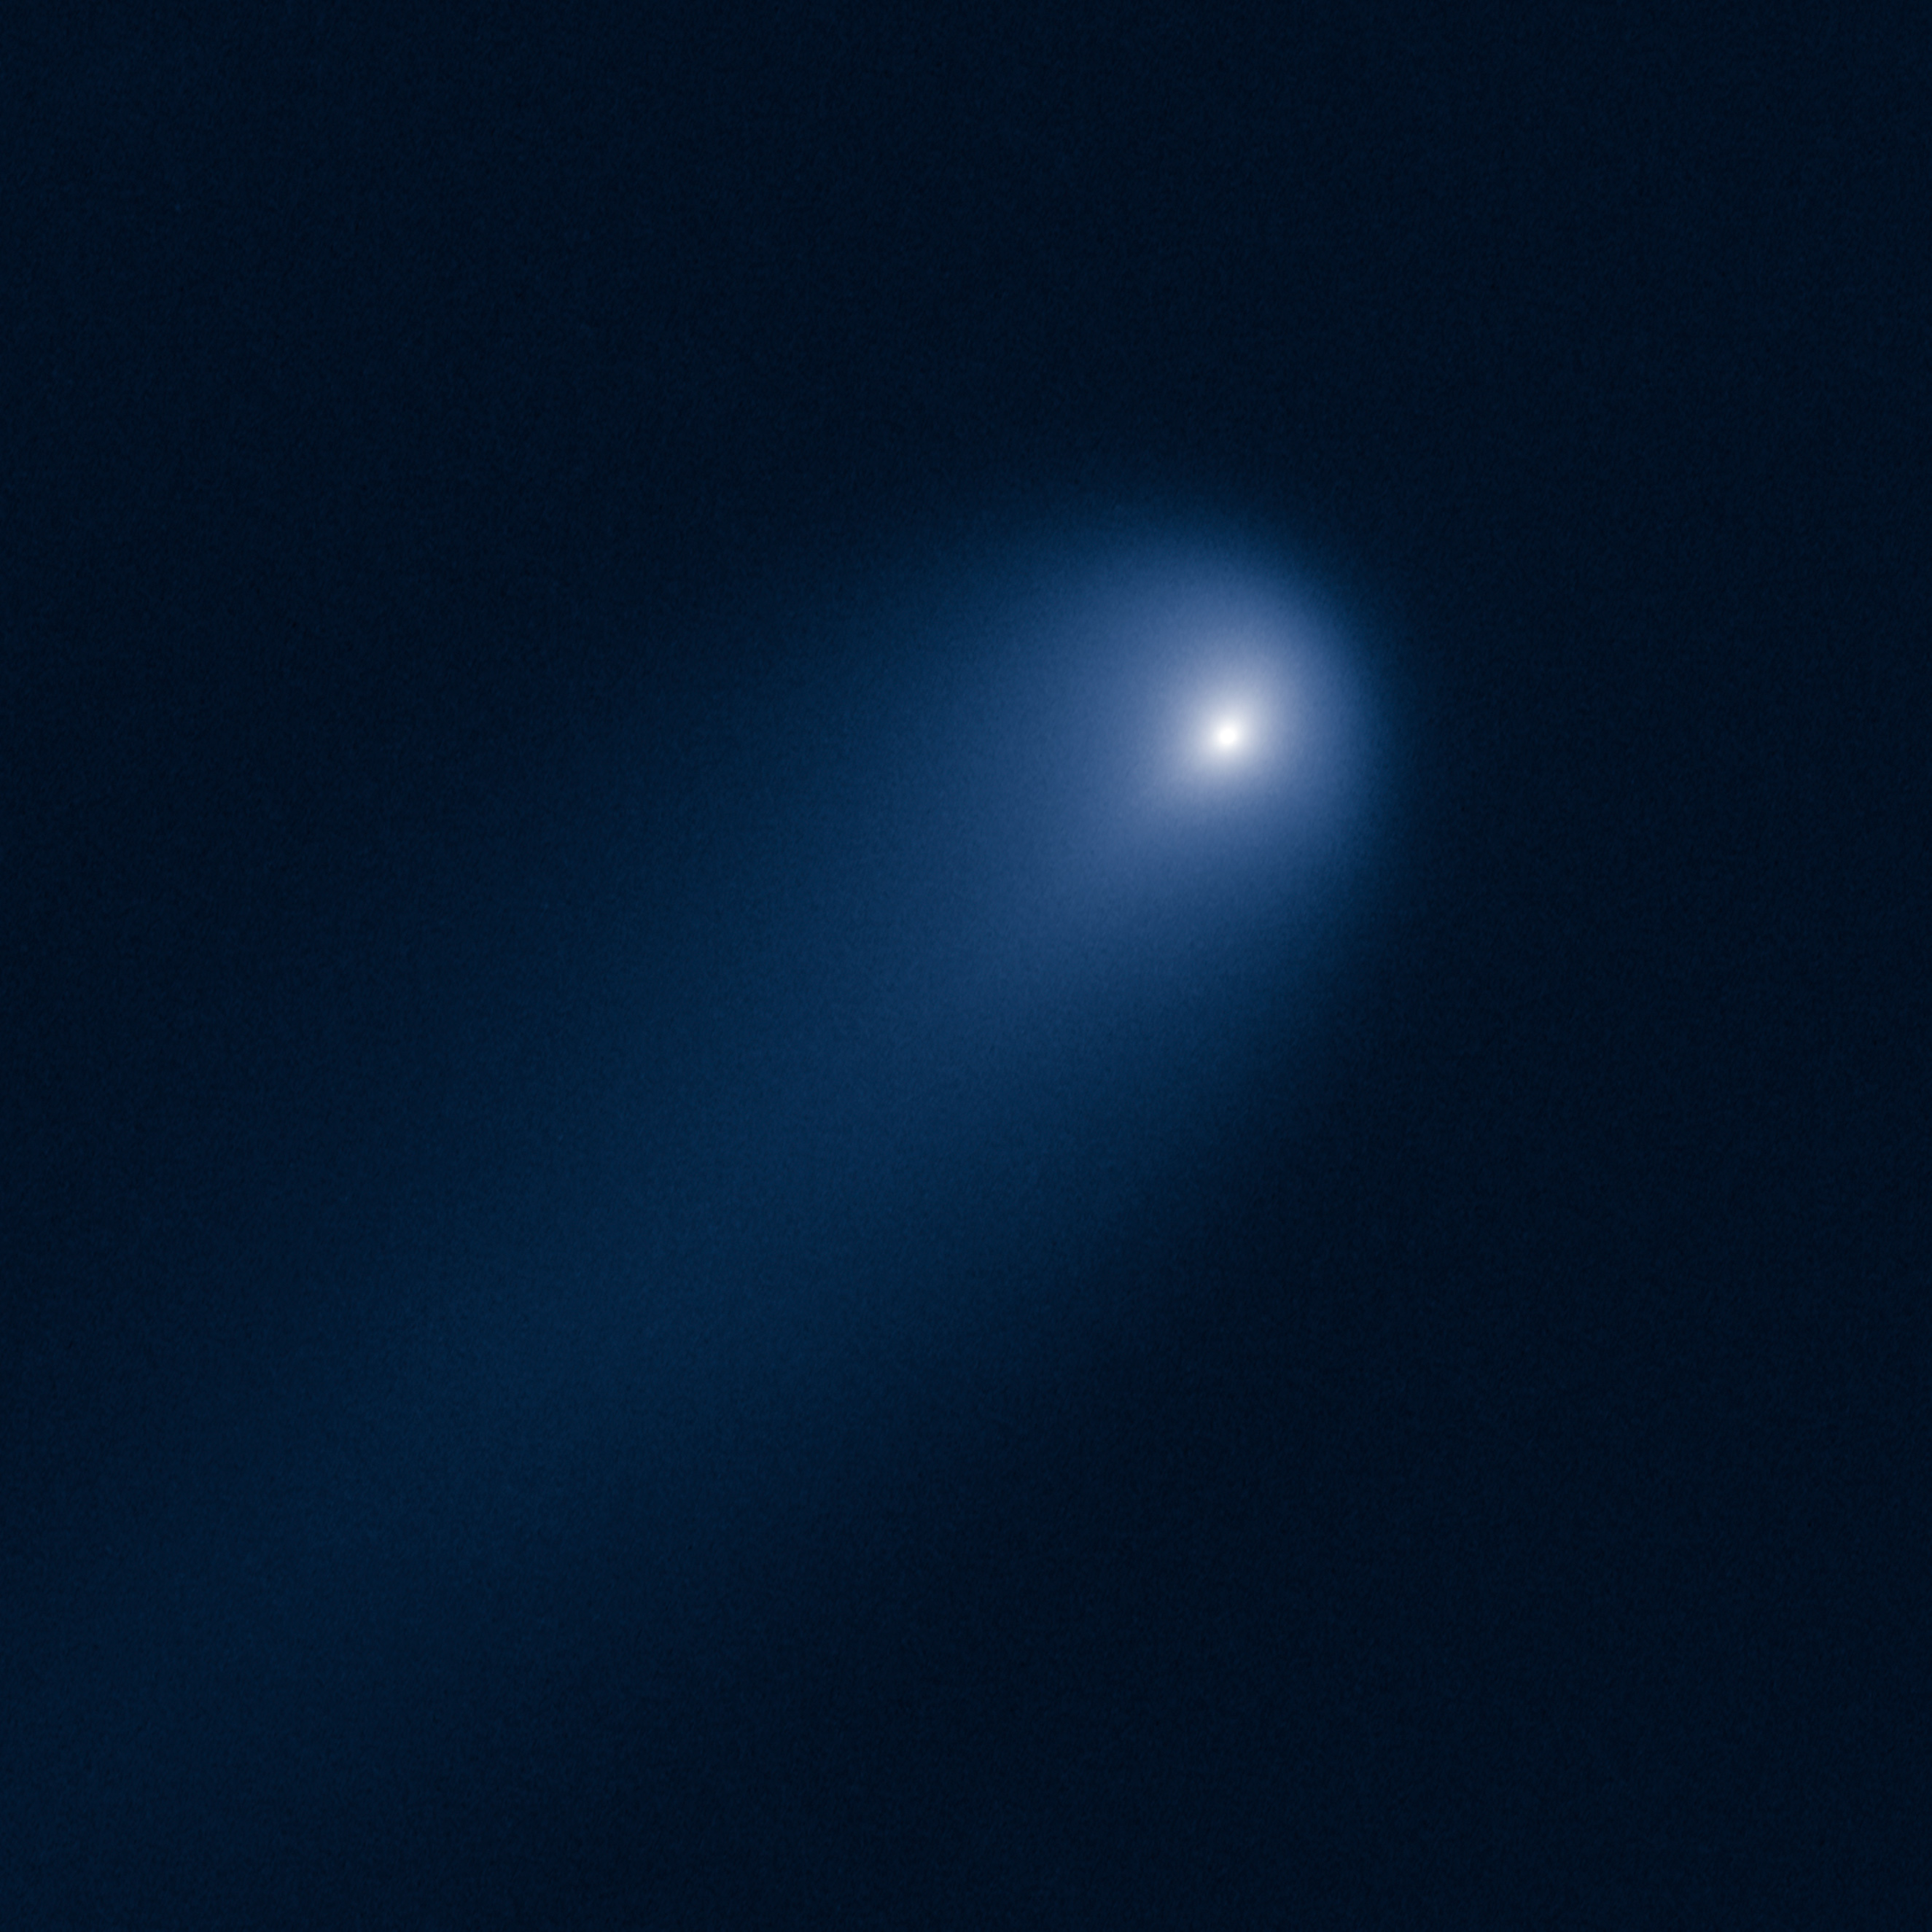 Comet Ison:                               Hubble captured this image of Comet C/2012 S1 (ISON) on April 10, when the comet was at a distance of 386 million miles from the Sun (and 394 million miles from Earth). Preliminary measurements from the Hubble images suggest that the nucleus of ISON is no larger than three or four miles across.  The comet's dusty coma, or head of the comet, is approximately 3,100 miles across, or 1.2 times the width of Australia. A dust tail extends more than 57,000 miles, far beyond Hubble's field of view.                               Image released on April 23, 2013.